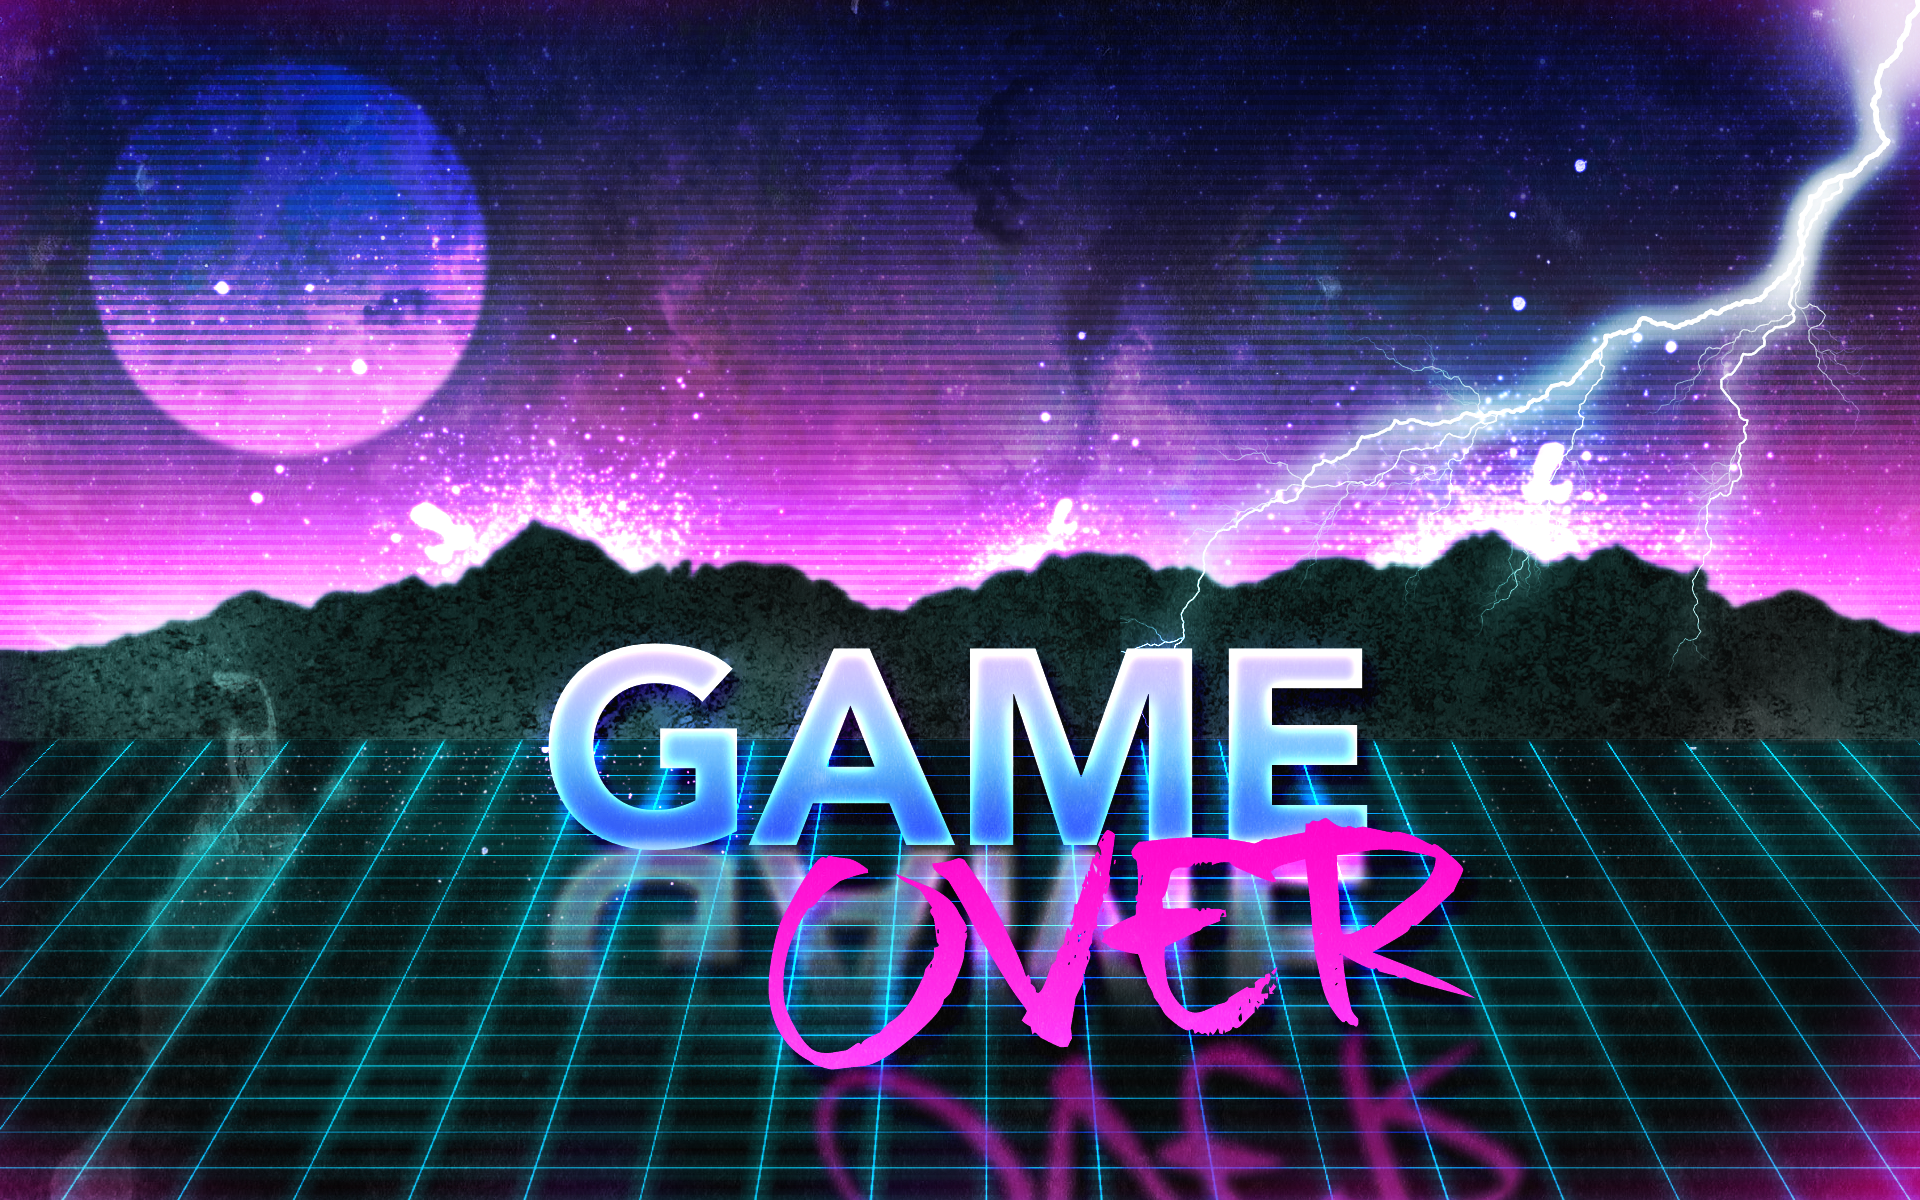 80s retro game over wallpaper by leepiin on deviantart 80s retro game over wallpaper by leepiin voltagebd Gallery